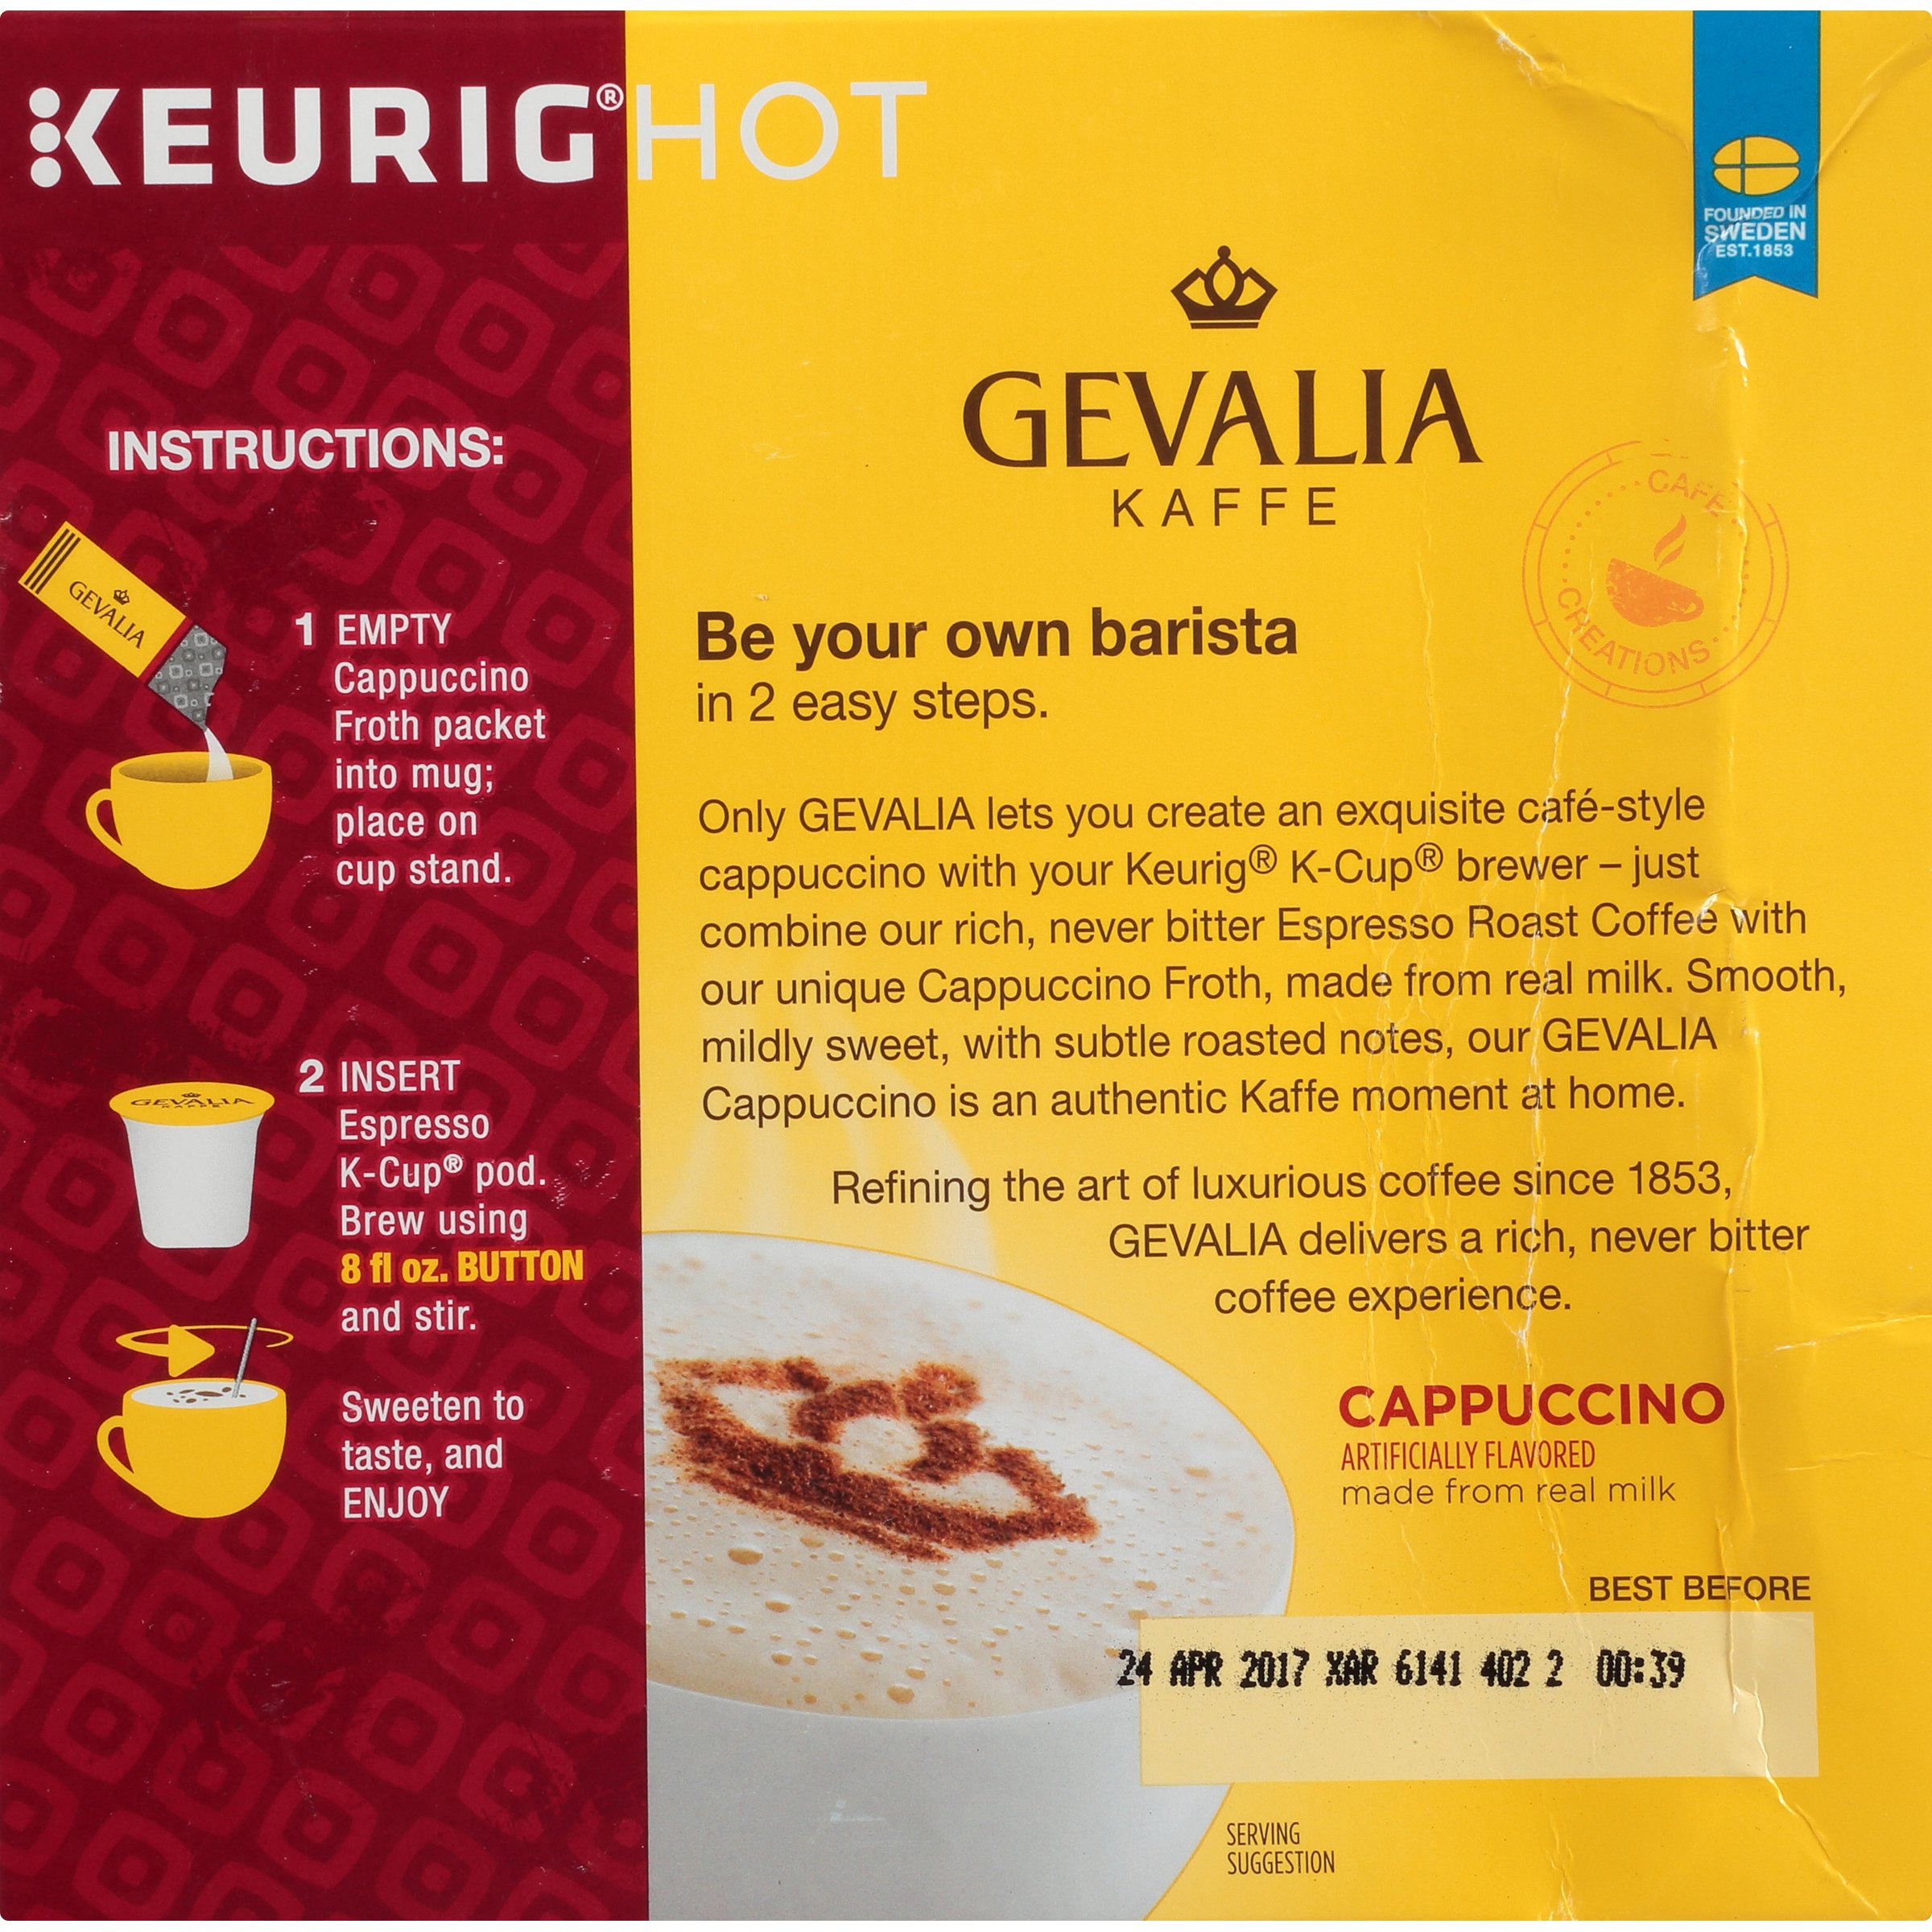 Gevalia Cappuccino K-Cup Pods and Froth Packets, 36 Count (4 Packs of 9) by Gevalia (Image #4)